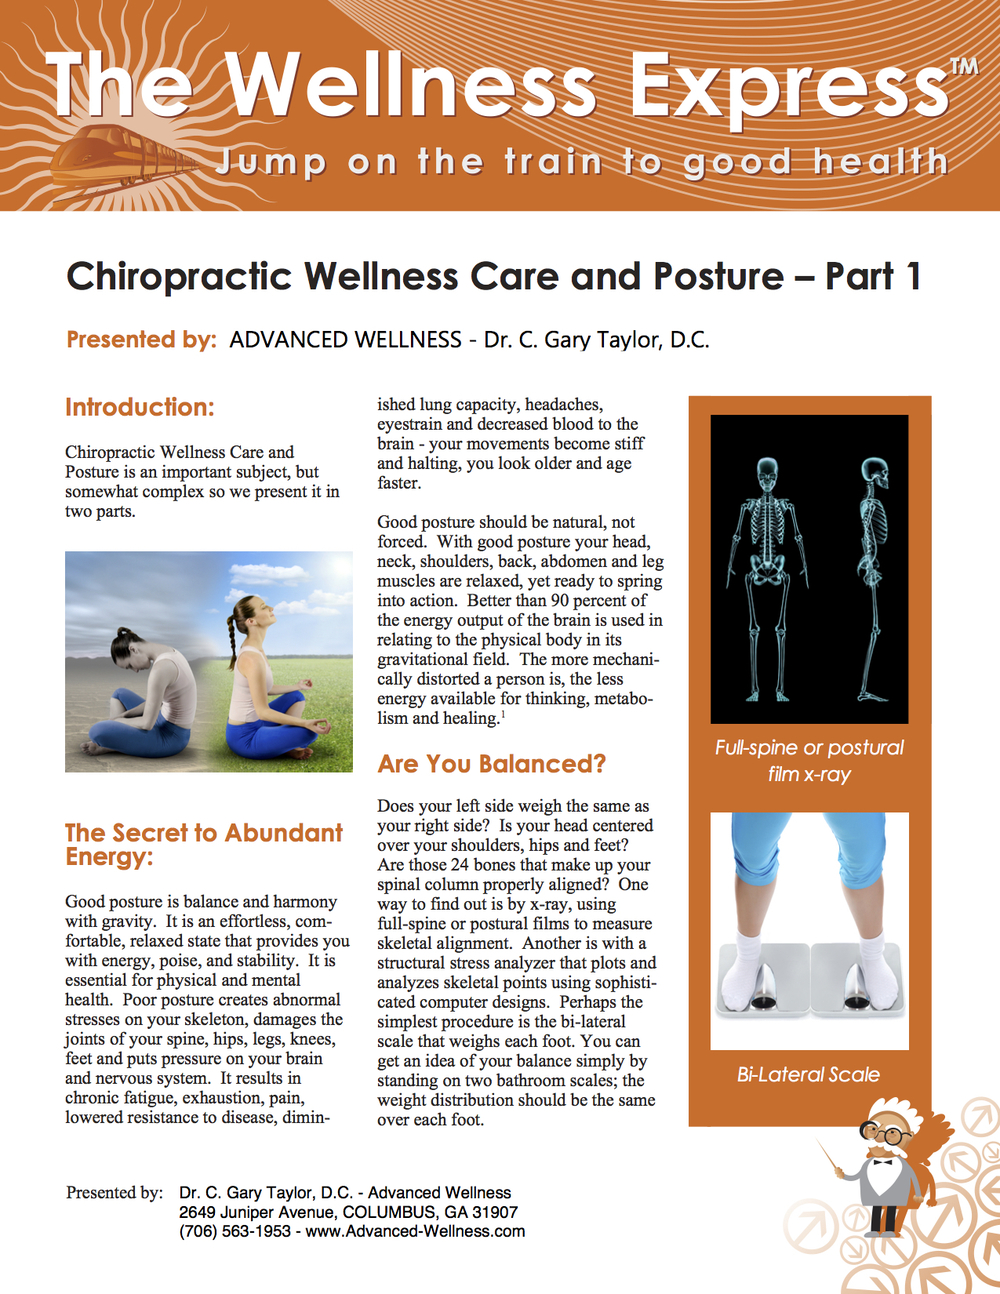 Chiropractic Wellness Care and Posture